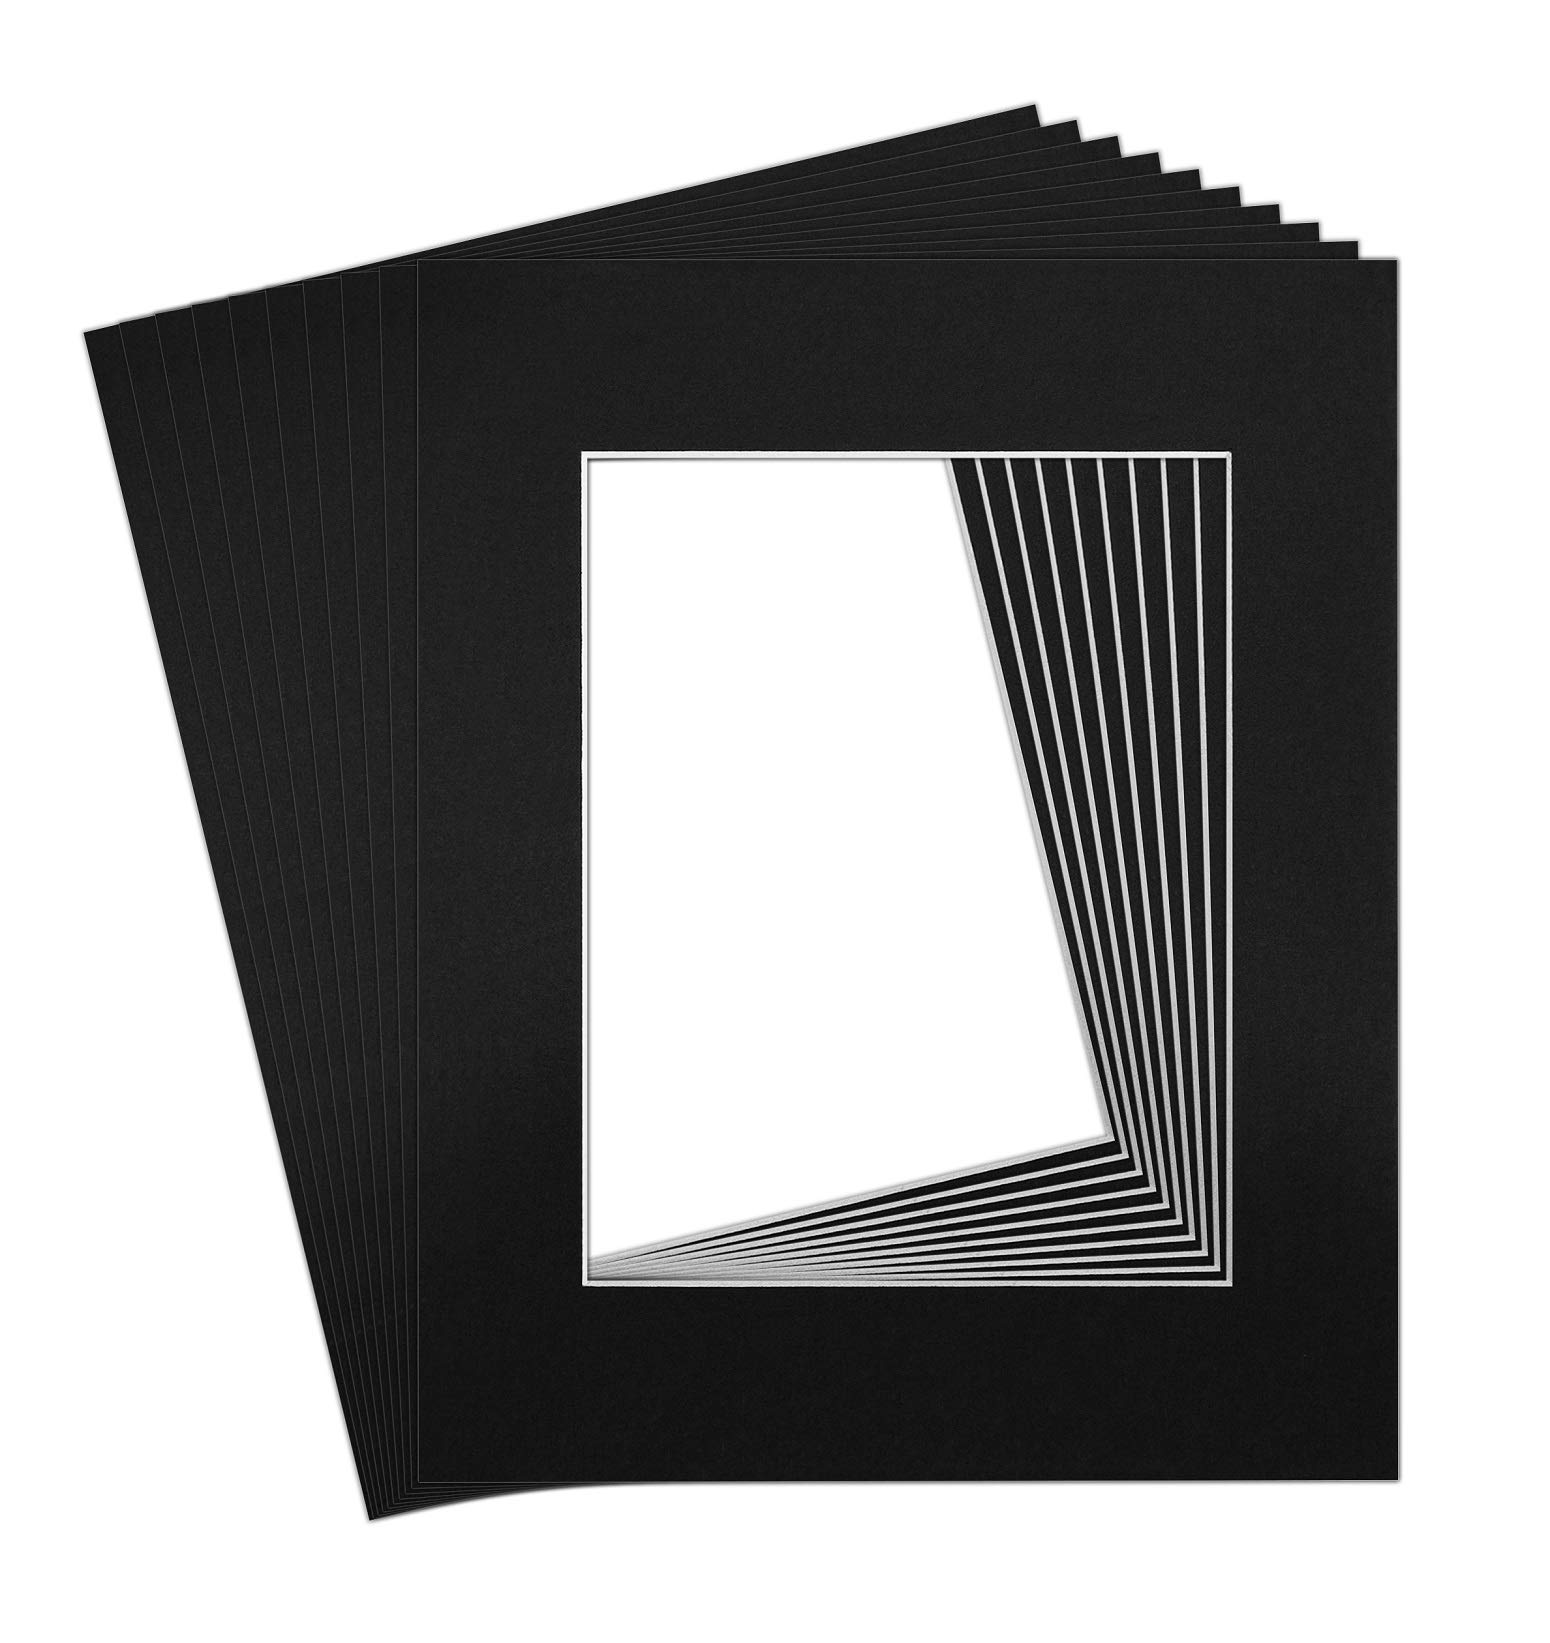 Pack of 10 16x20 BLACK Picture Mats with White Core Bevel Cut for 11x14 Pictures by Golden State Art